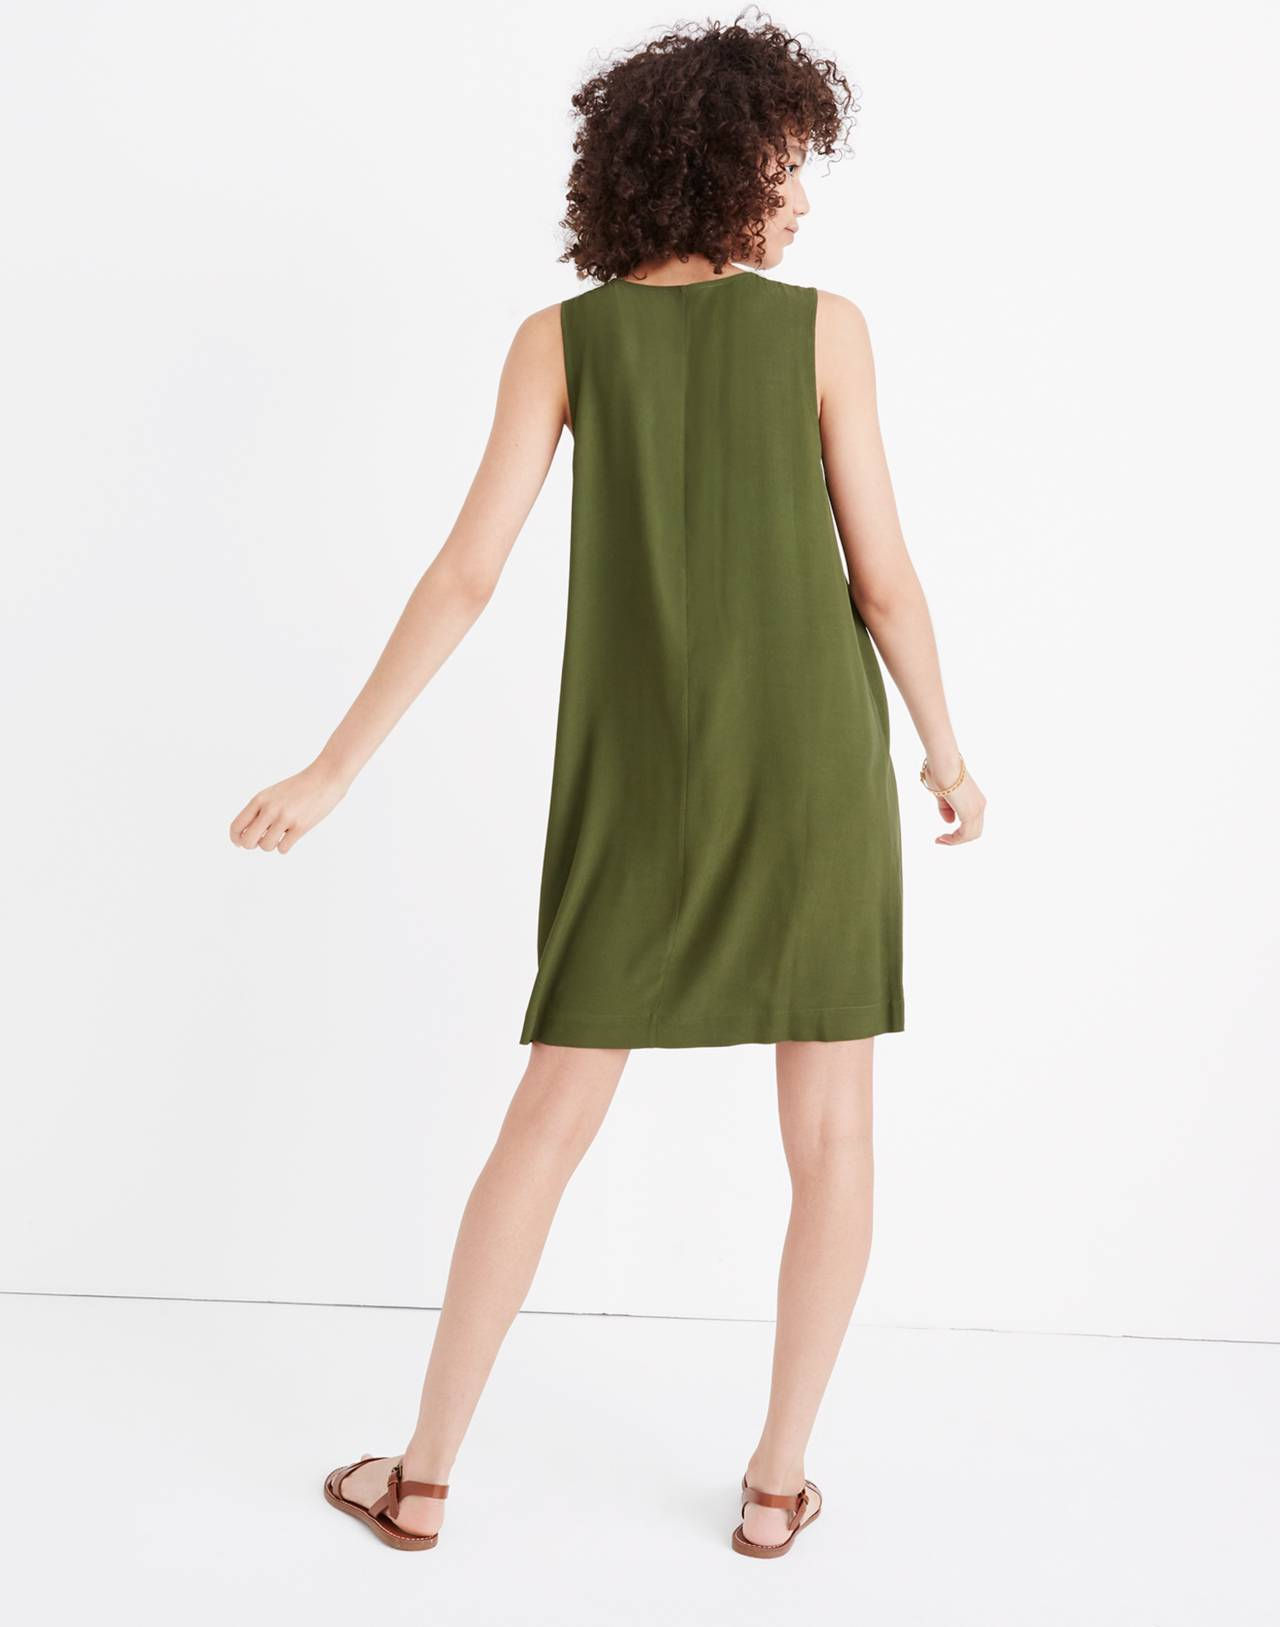 Heather Button-Front Dress in sweet balsam image 3